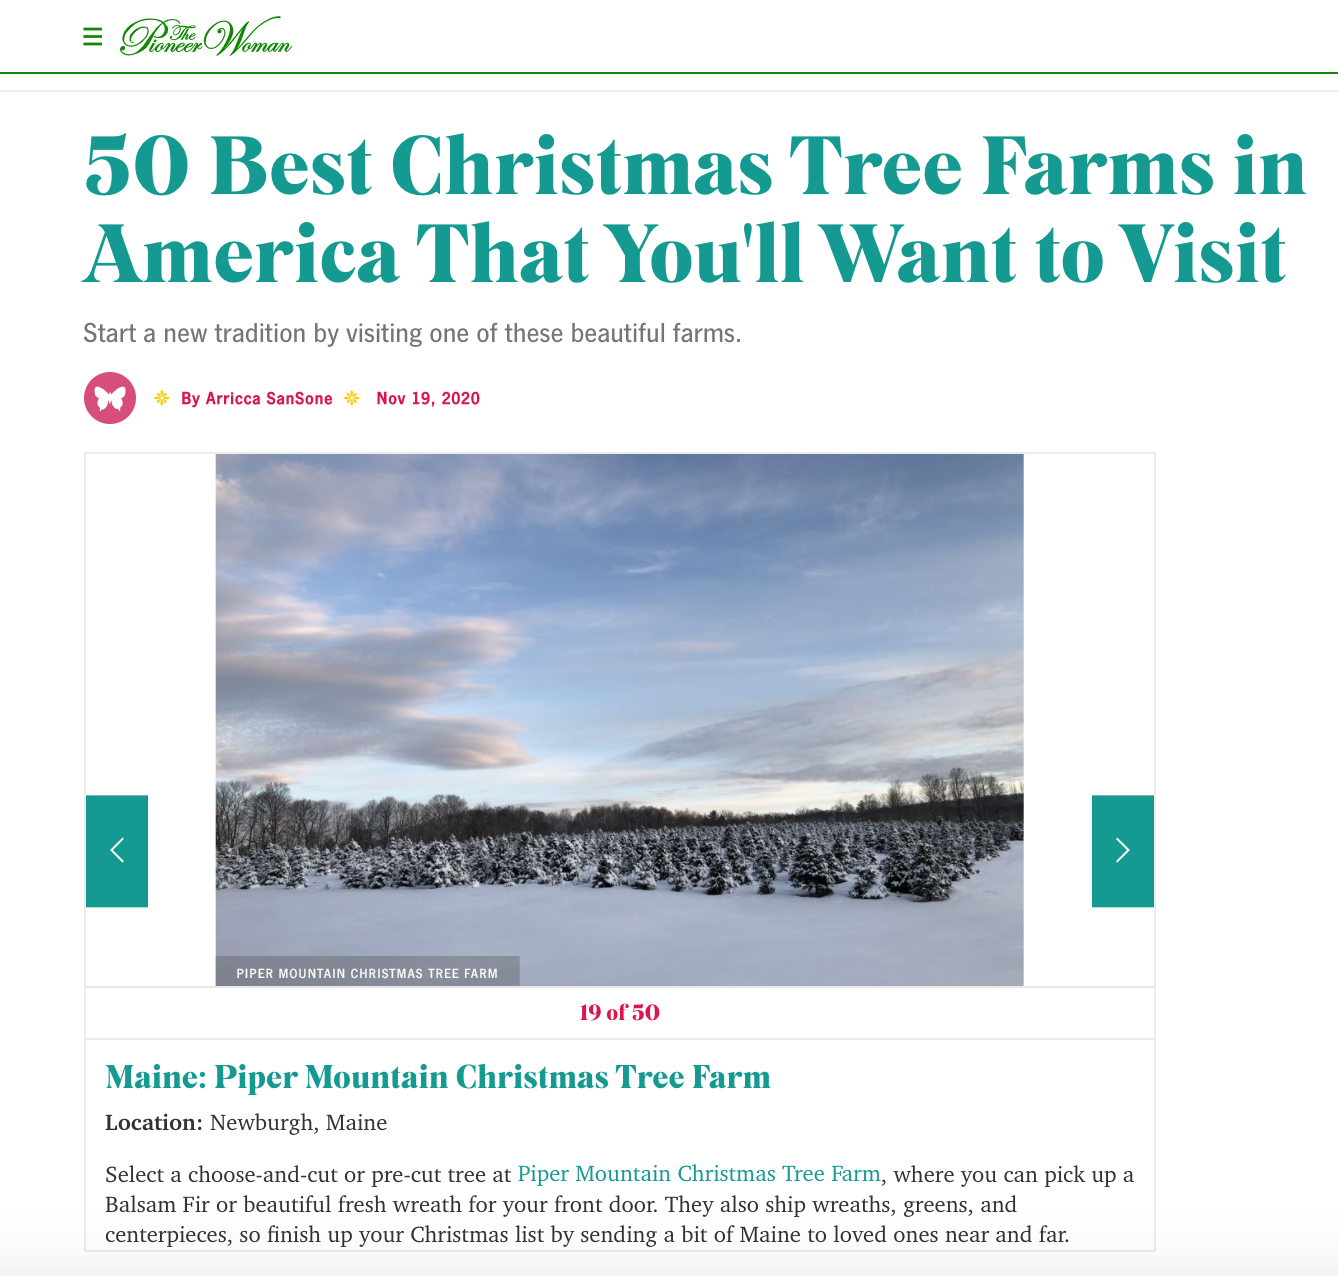 50 Best Christmas Tree Farms in America